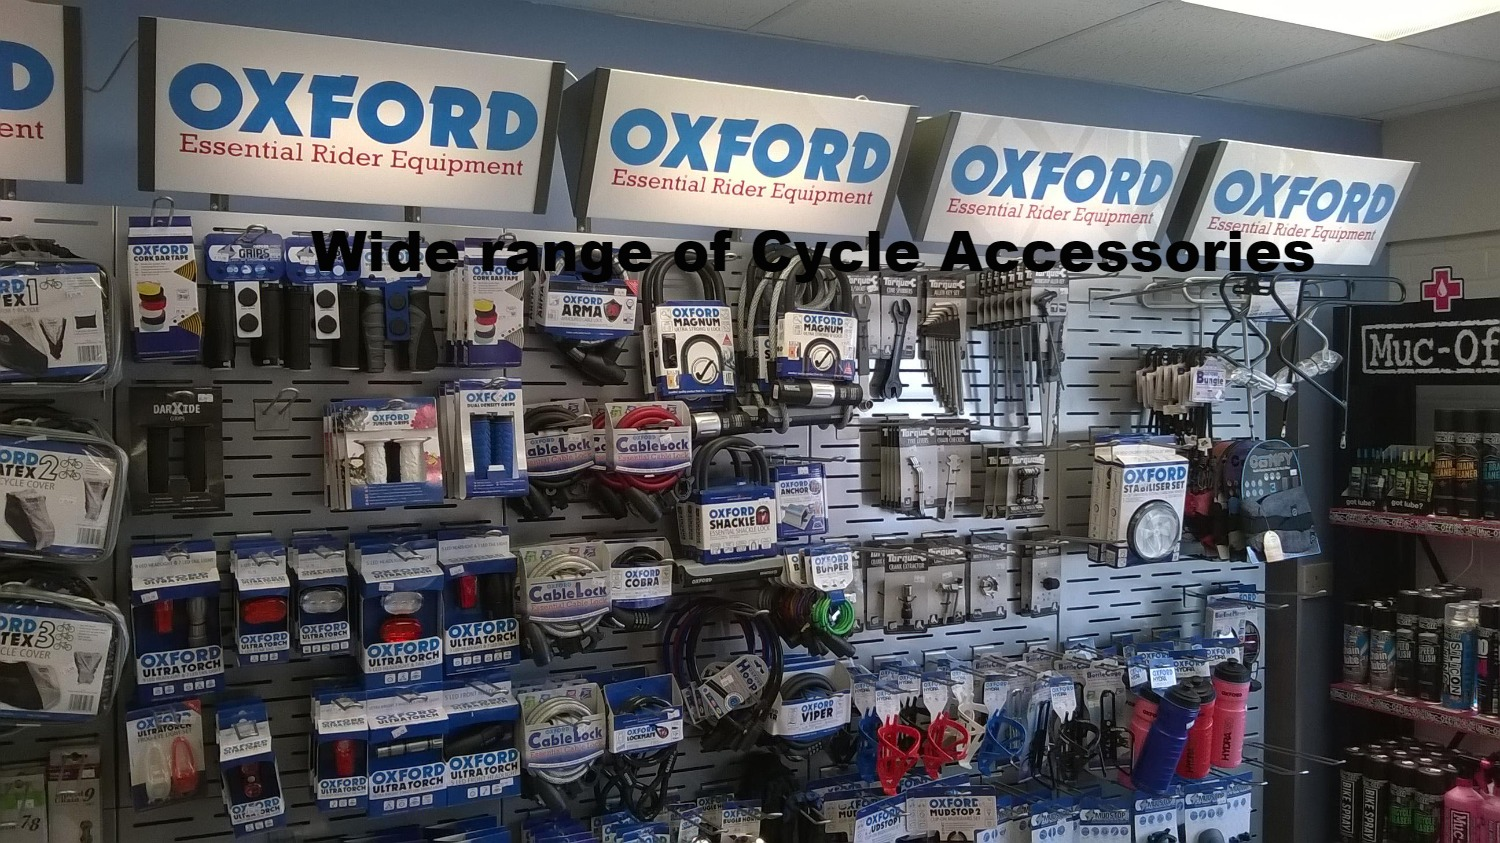 Oxford products range